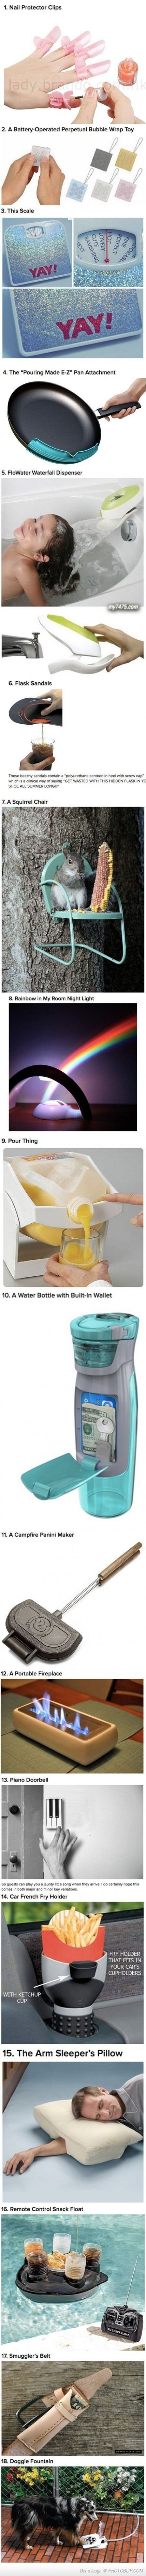 Things you didn't know existed - i genuinely want some of these, but the french fry holder is too weird!